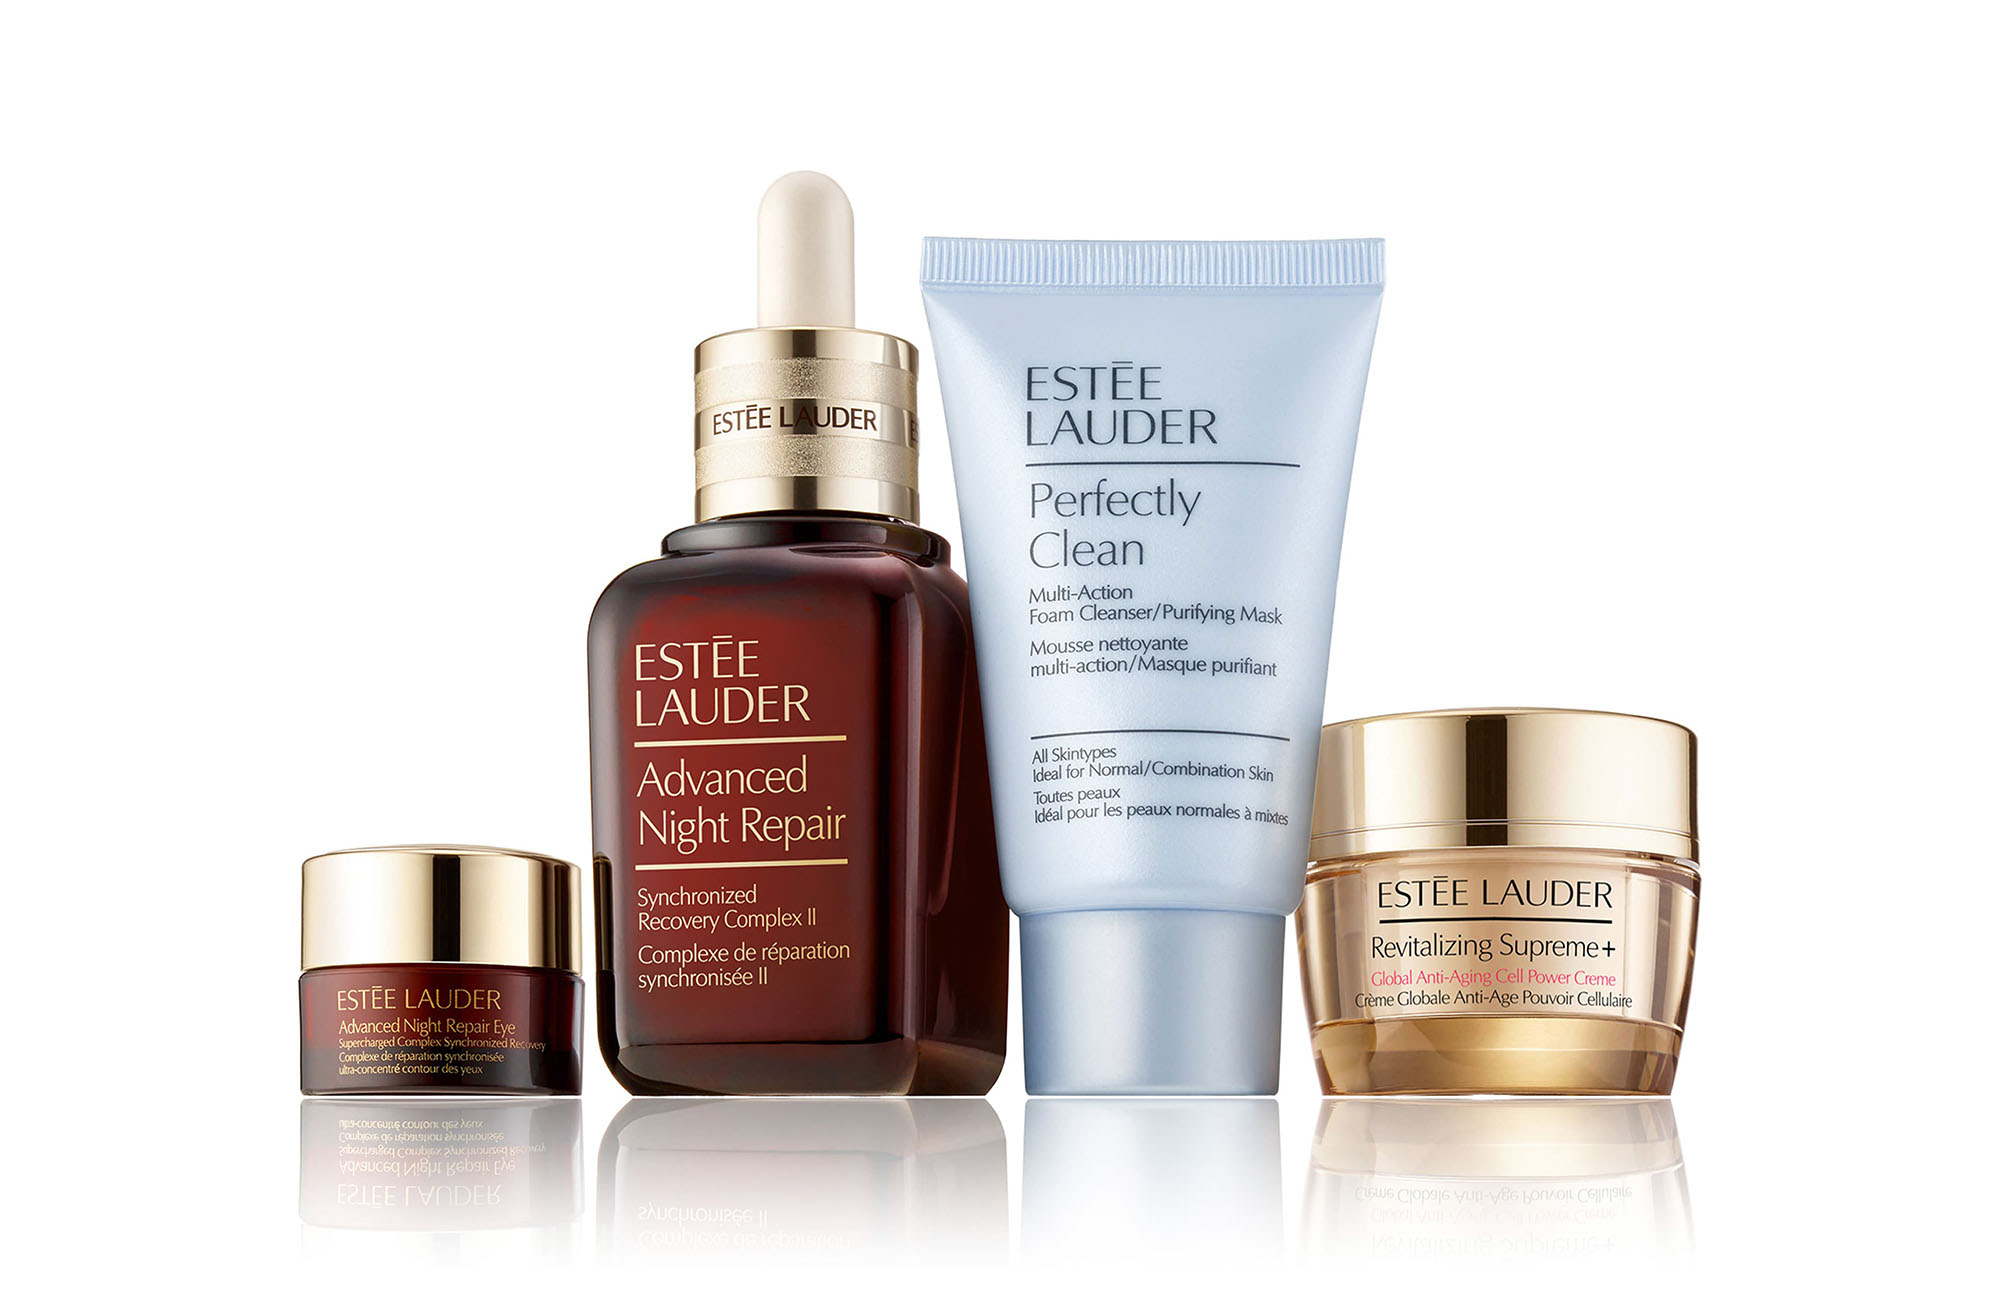 Estee Lauder Repair + Renew Set